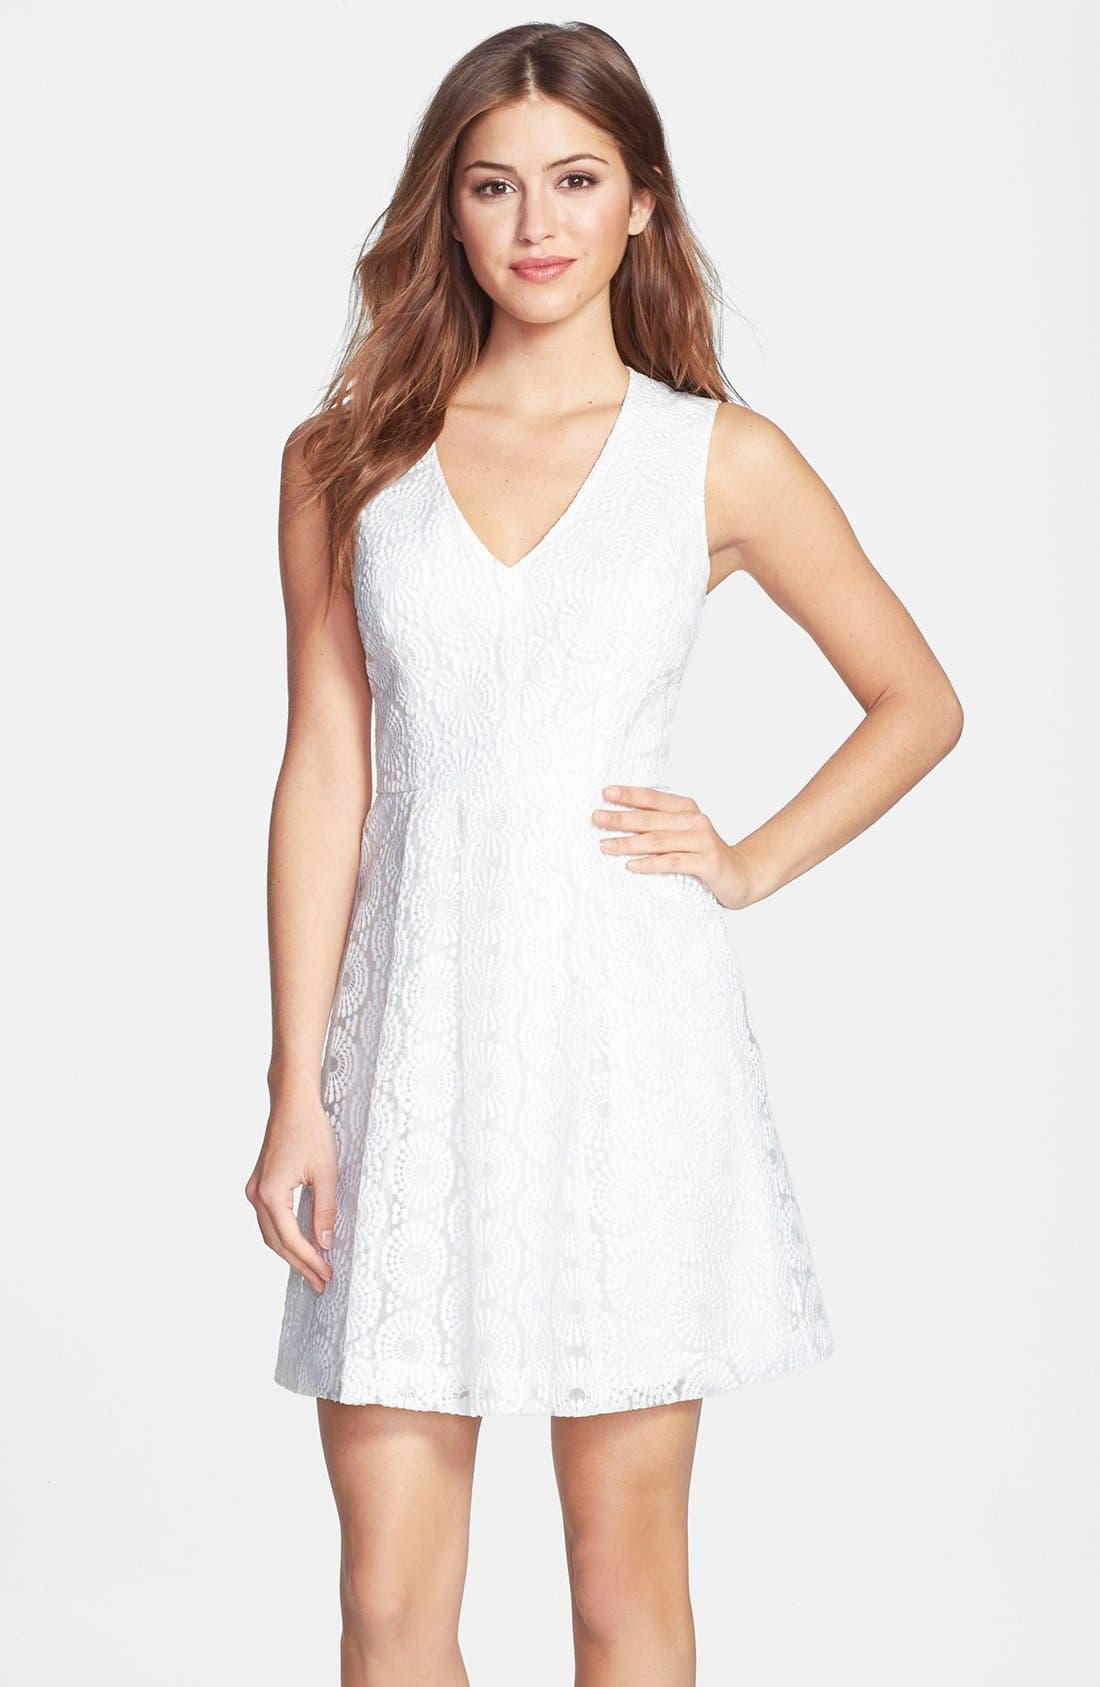 Alternate Image 1 Selected - Plenty by Tracy Reese 'Ashley' Lace Fit & Flare Dress (Petite)